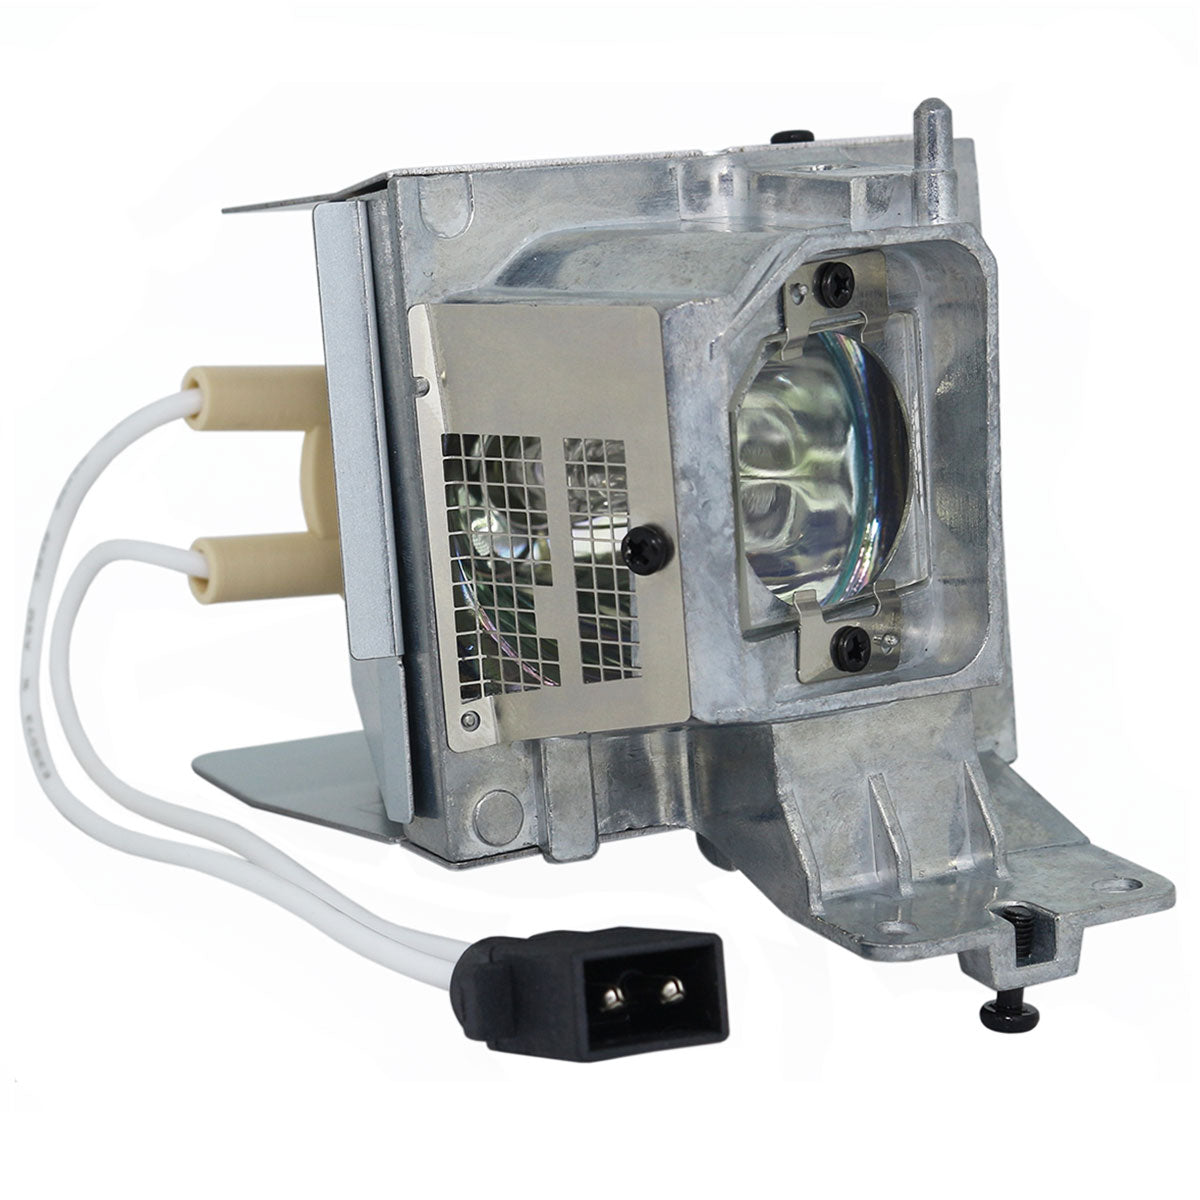 RICOH 512771 Philips Projector Lamp Module